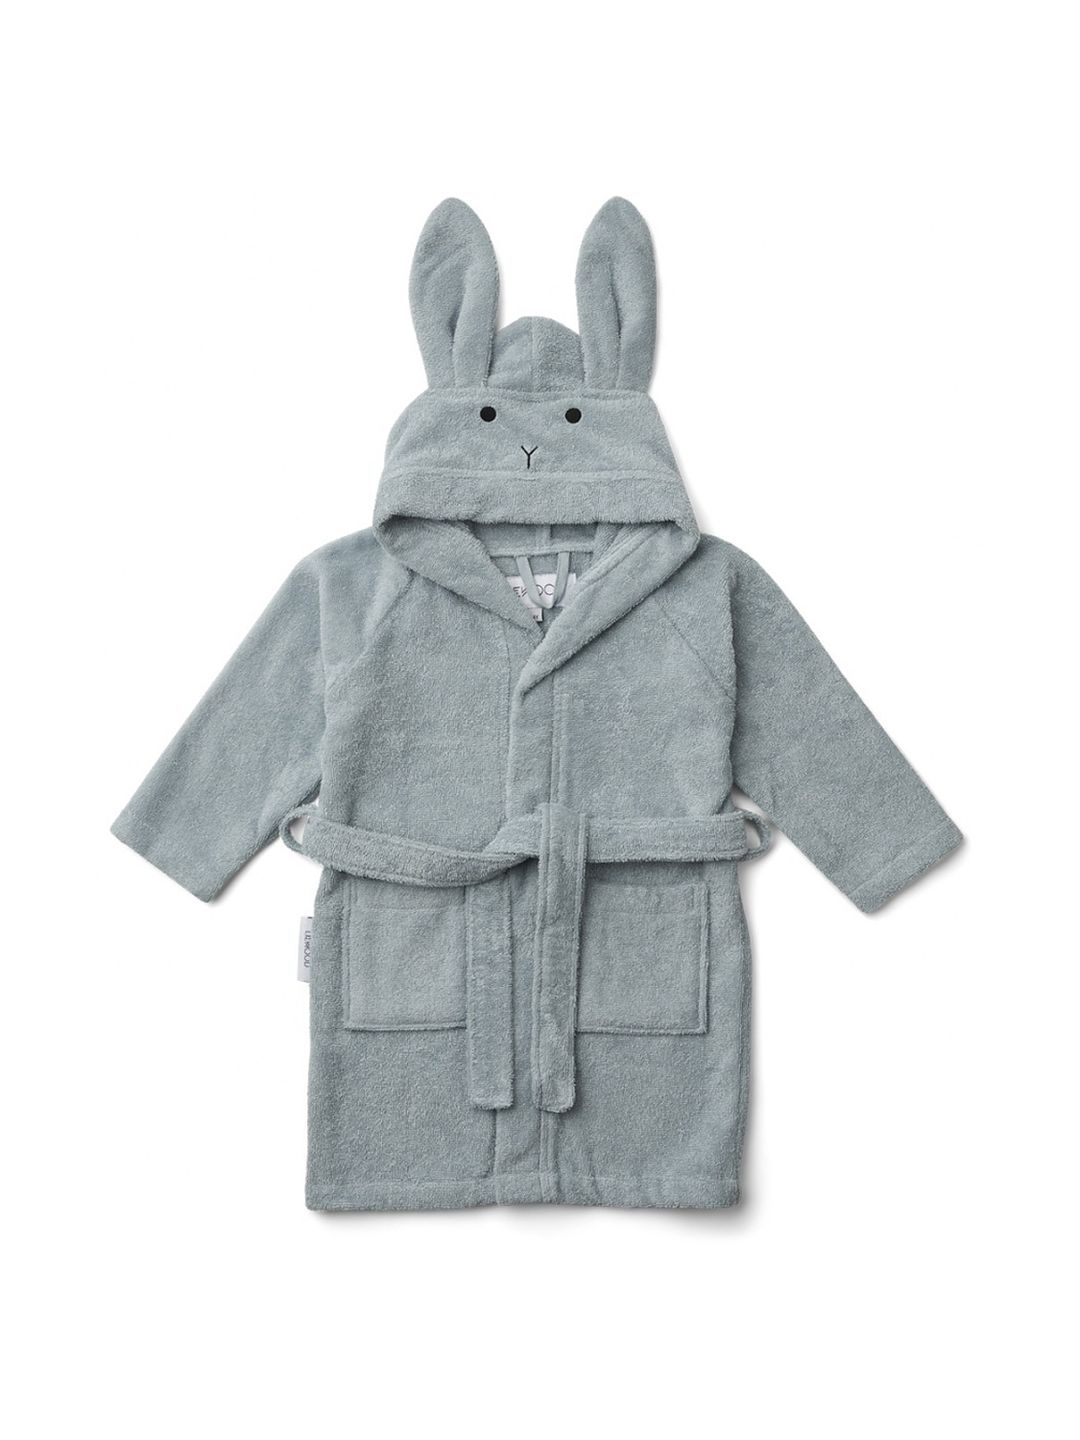 Lily bathrobe - Rabbit blue sea